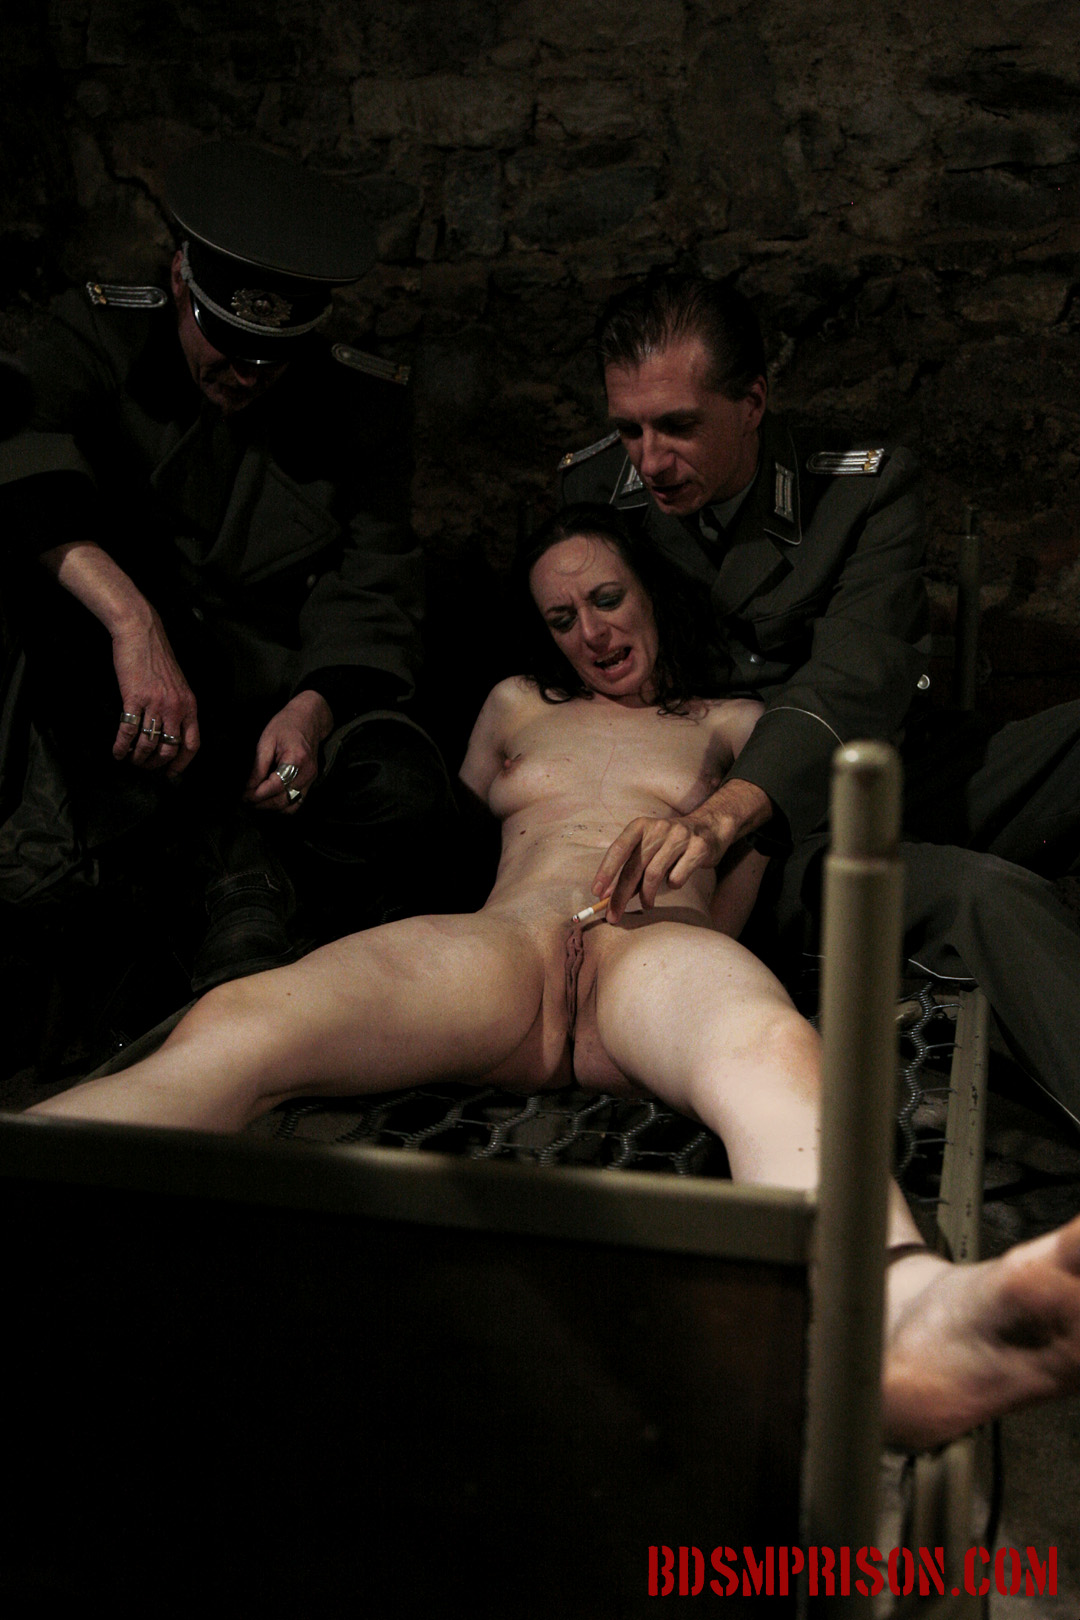 Nadja endures bondage nipple torment with cigarettes. Nadja, a crazy young slut, mimes innocent when she wakes up bound to a bed frame in the basement of our institute. She's been charged with prostitution and has earned sex slave traininig. A prison guard welcomes Nadja to her a punishment consisting of two BDSM Prison Masters, domination, humiliation, fingering, spanking, smacking, whipping, bondage, breast, vagina and nipple tortured with cigarettes and a lighter. She pleads for mercy, swearing she's innocent. Obviously her Master does not agree.